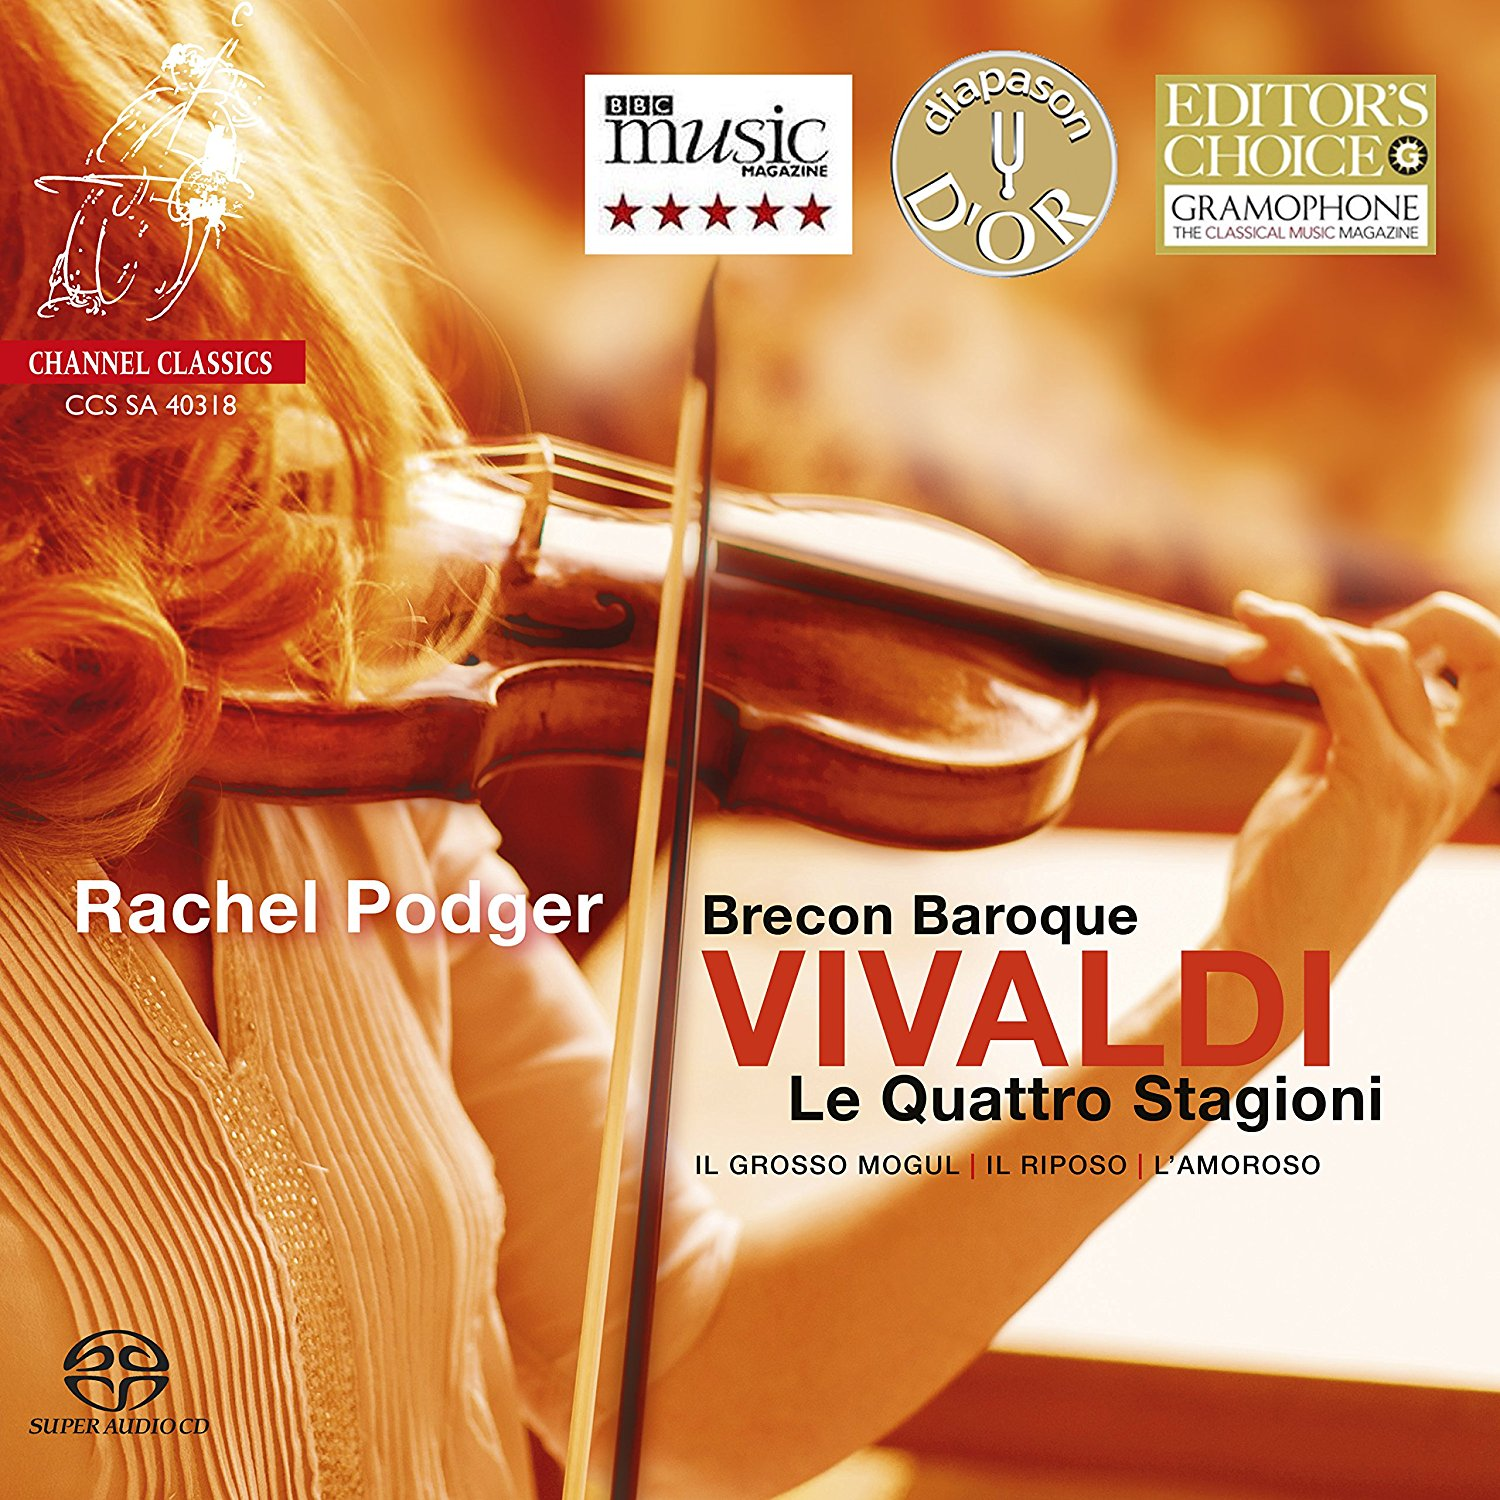 Vivaldi on Amazon